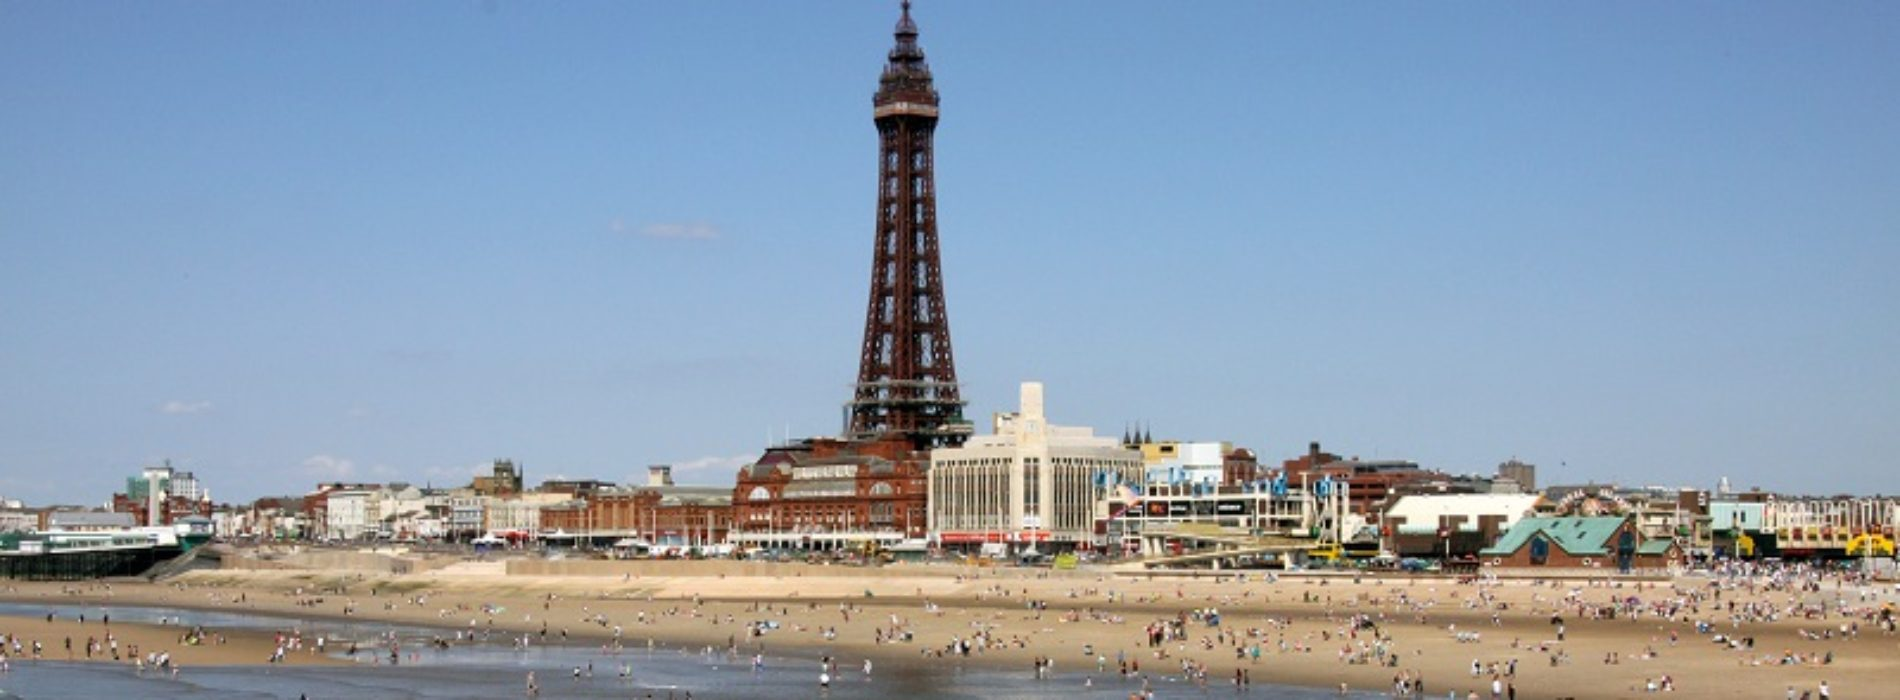 Disabled holidays: have you explored accessible Blackpool?